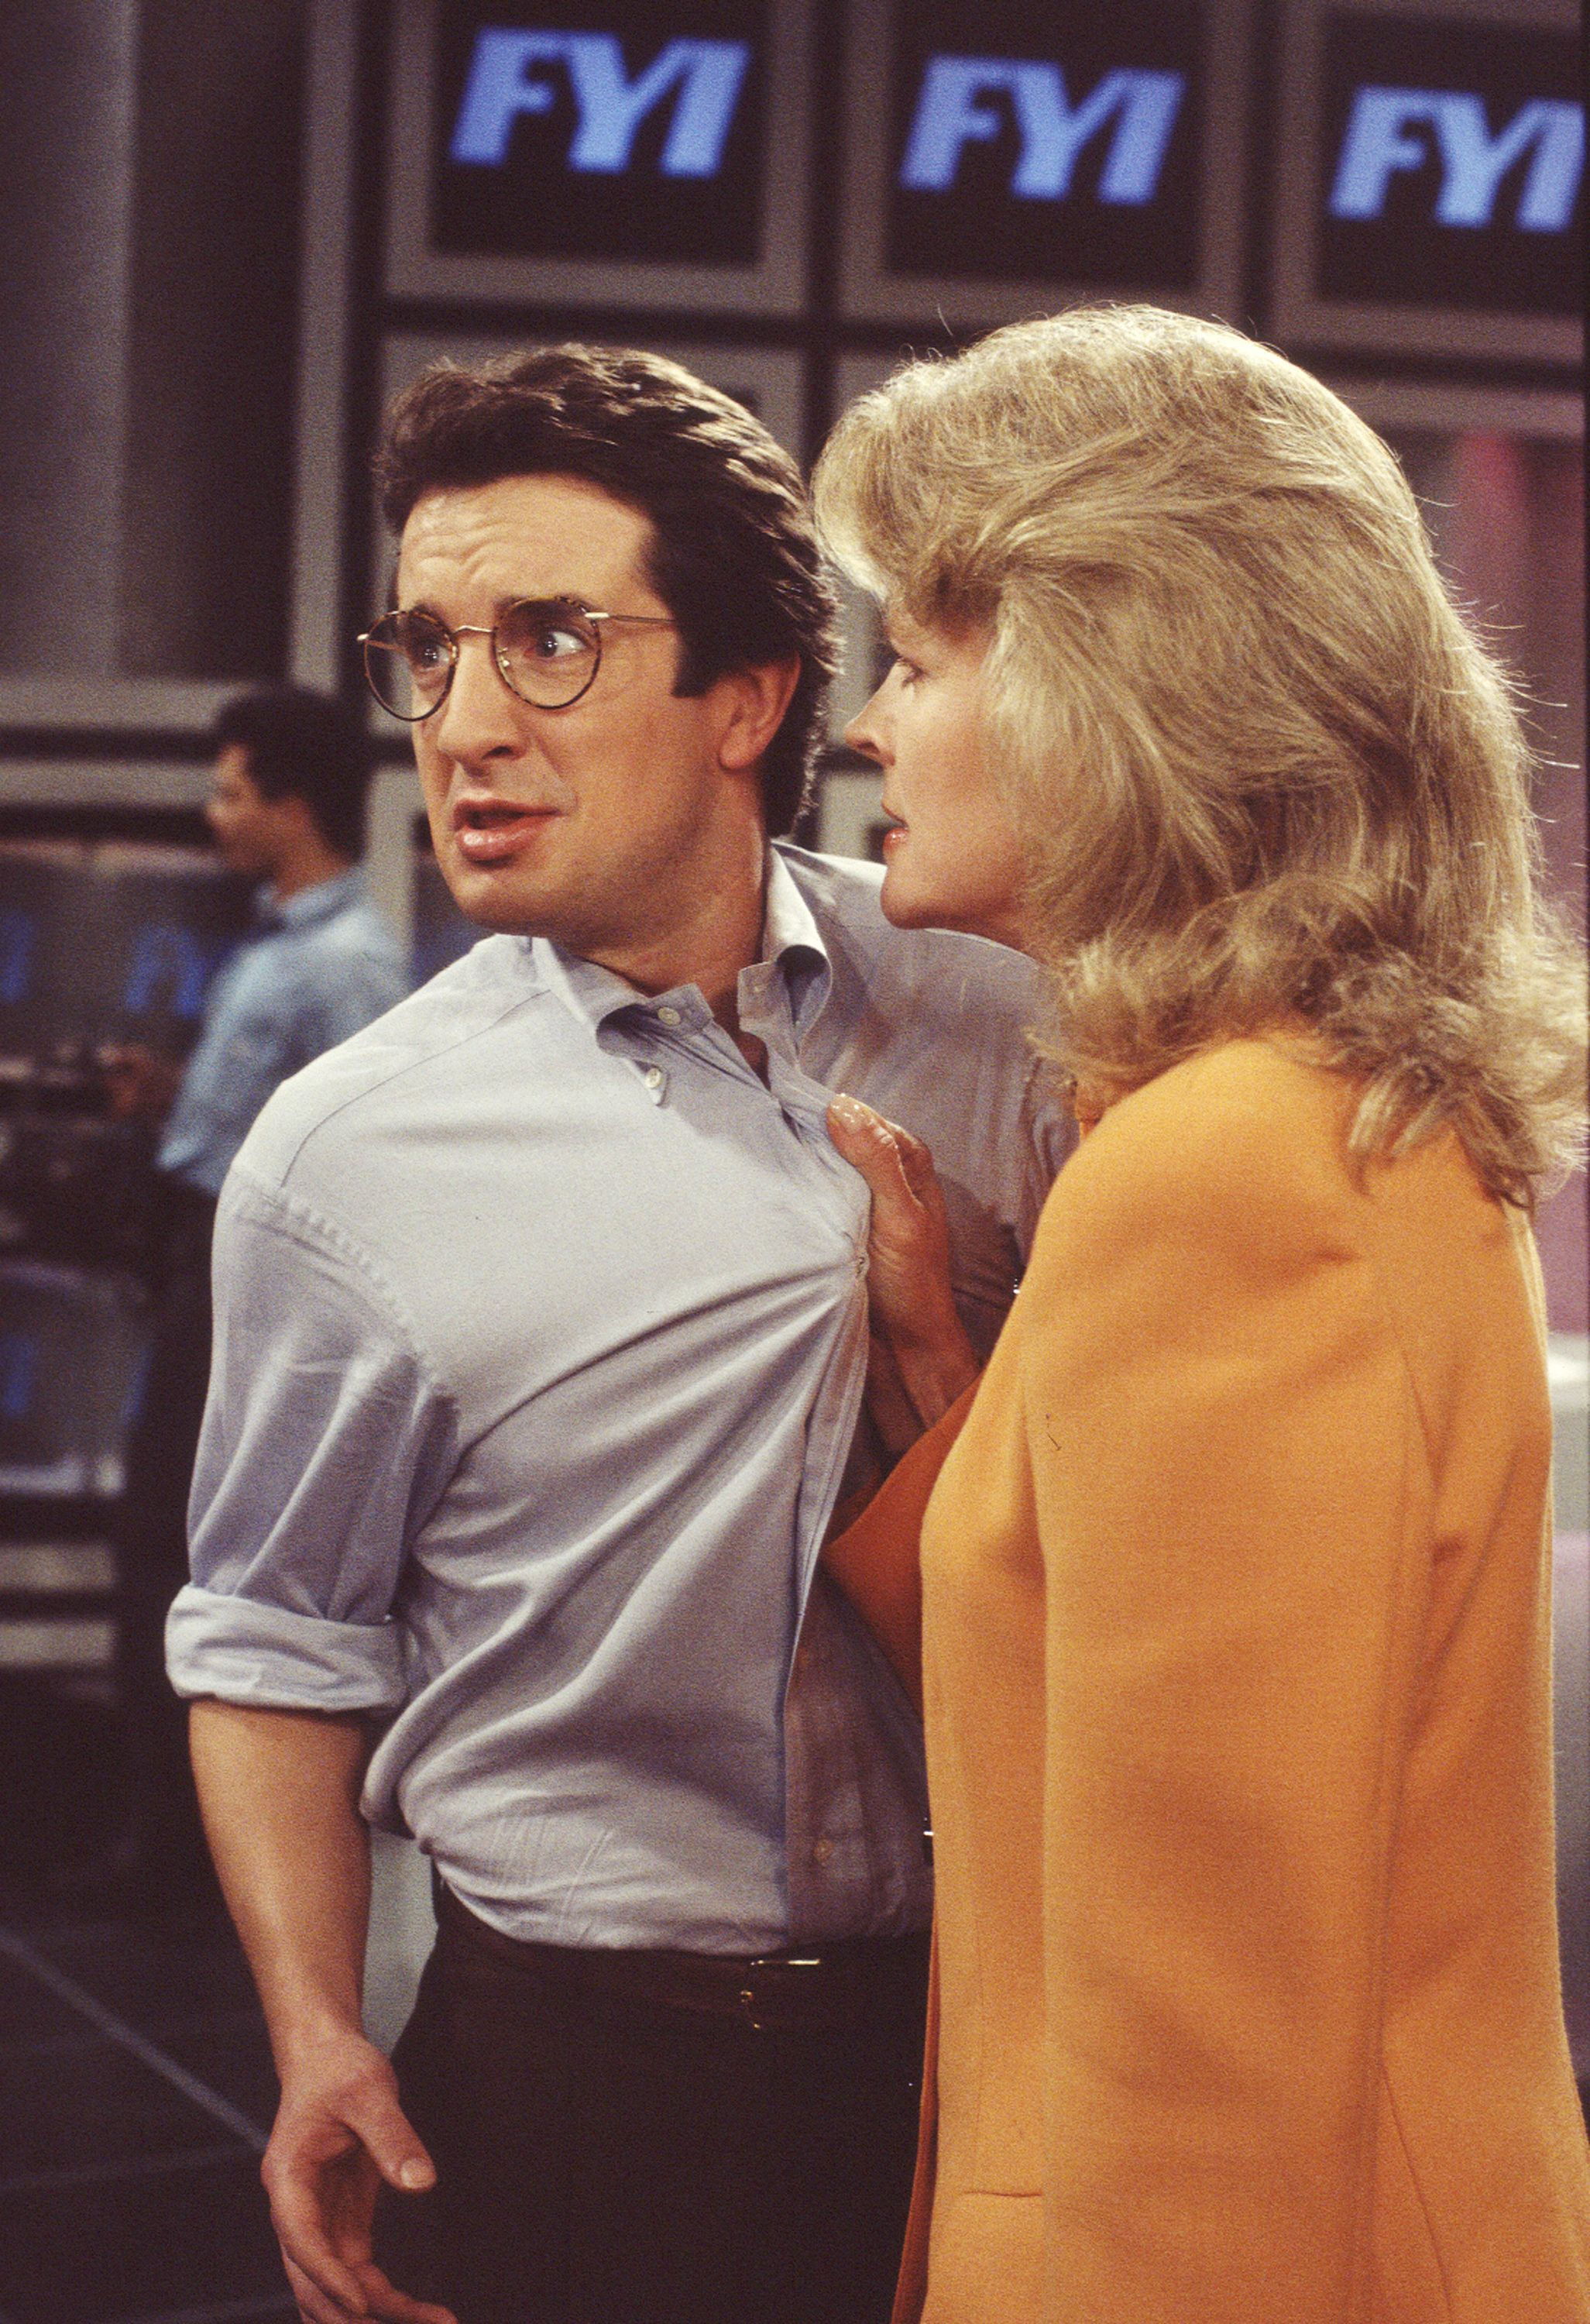 LOS ANGELES - JANUARY 14: MURPHY BROWN. Grant Shaud as Miles Silverberg and Candice Bergen as Murphy Brown. Image dated January 14, 1993. (Photo by CBS via Getty Images)